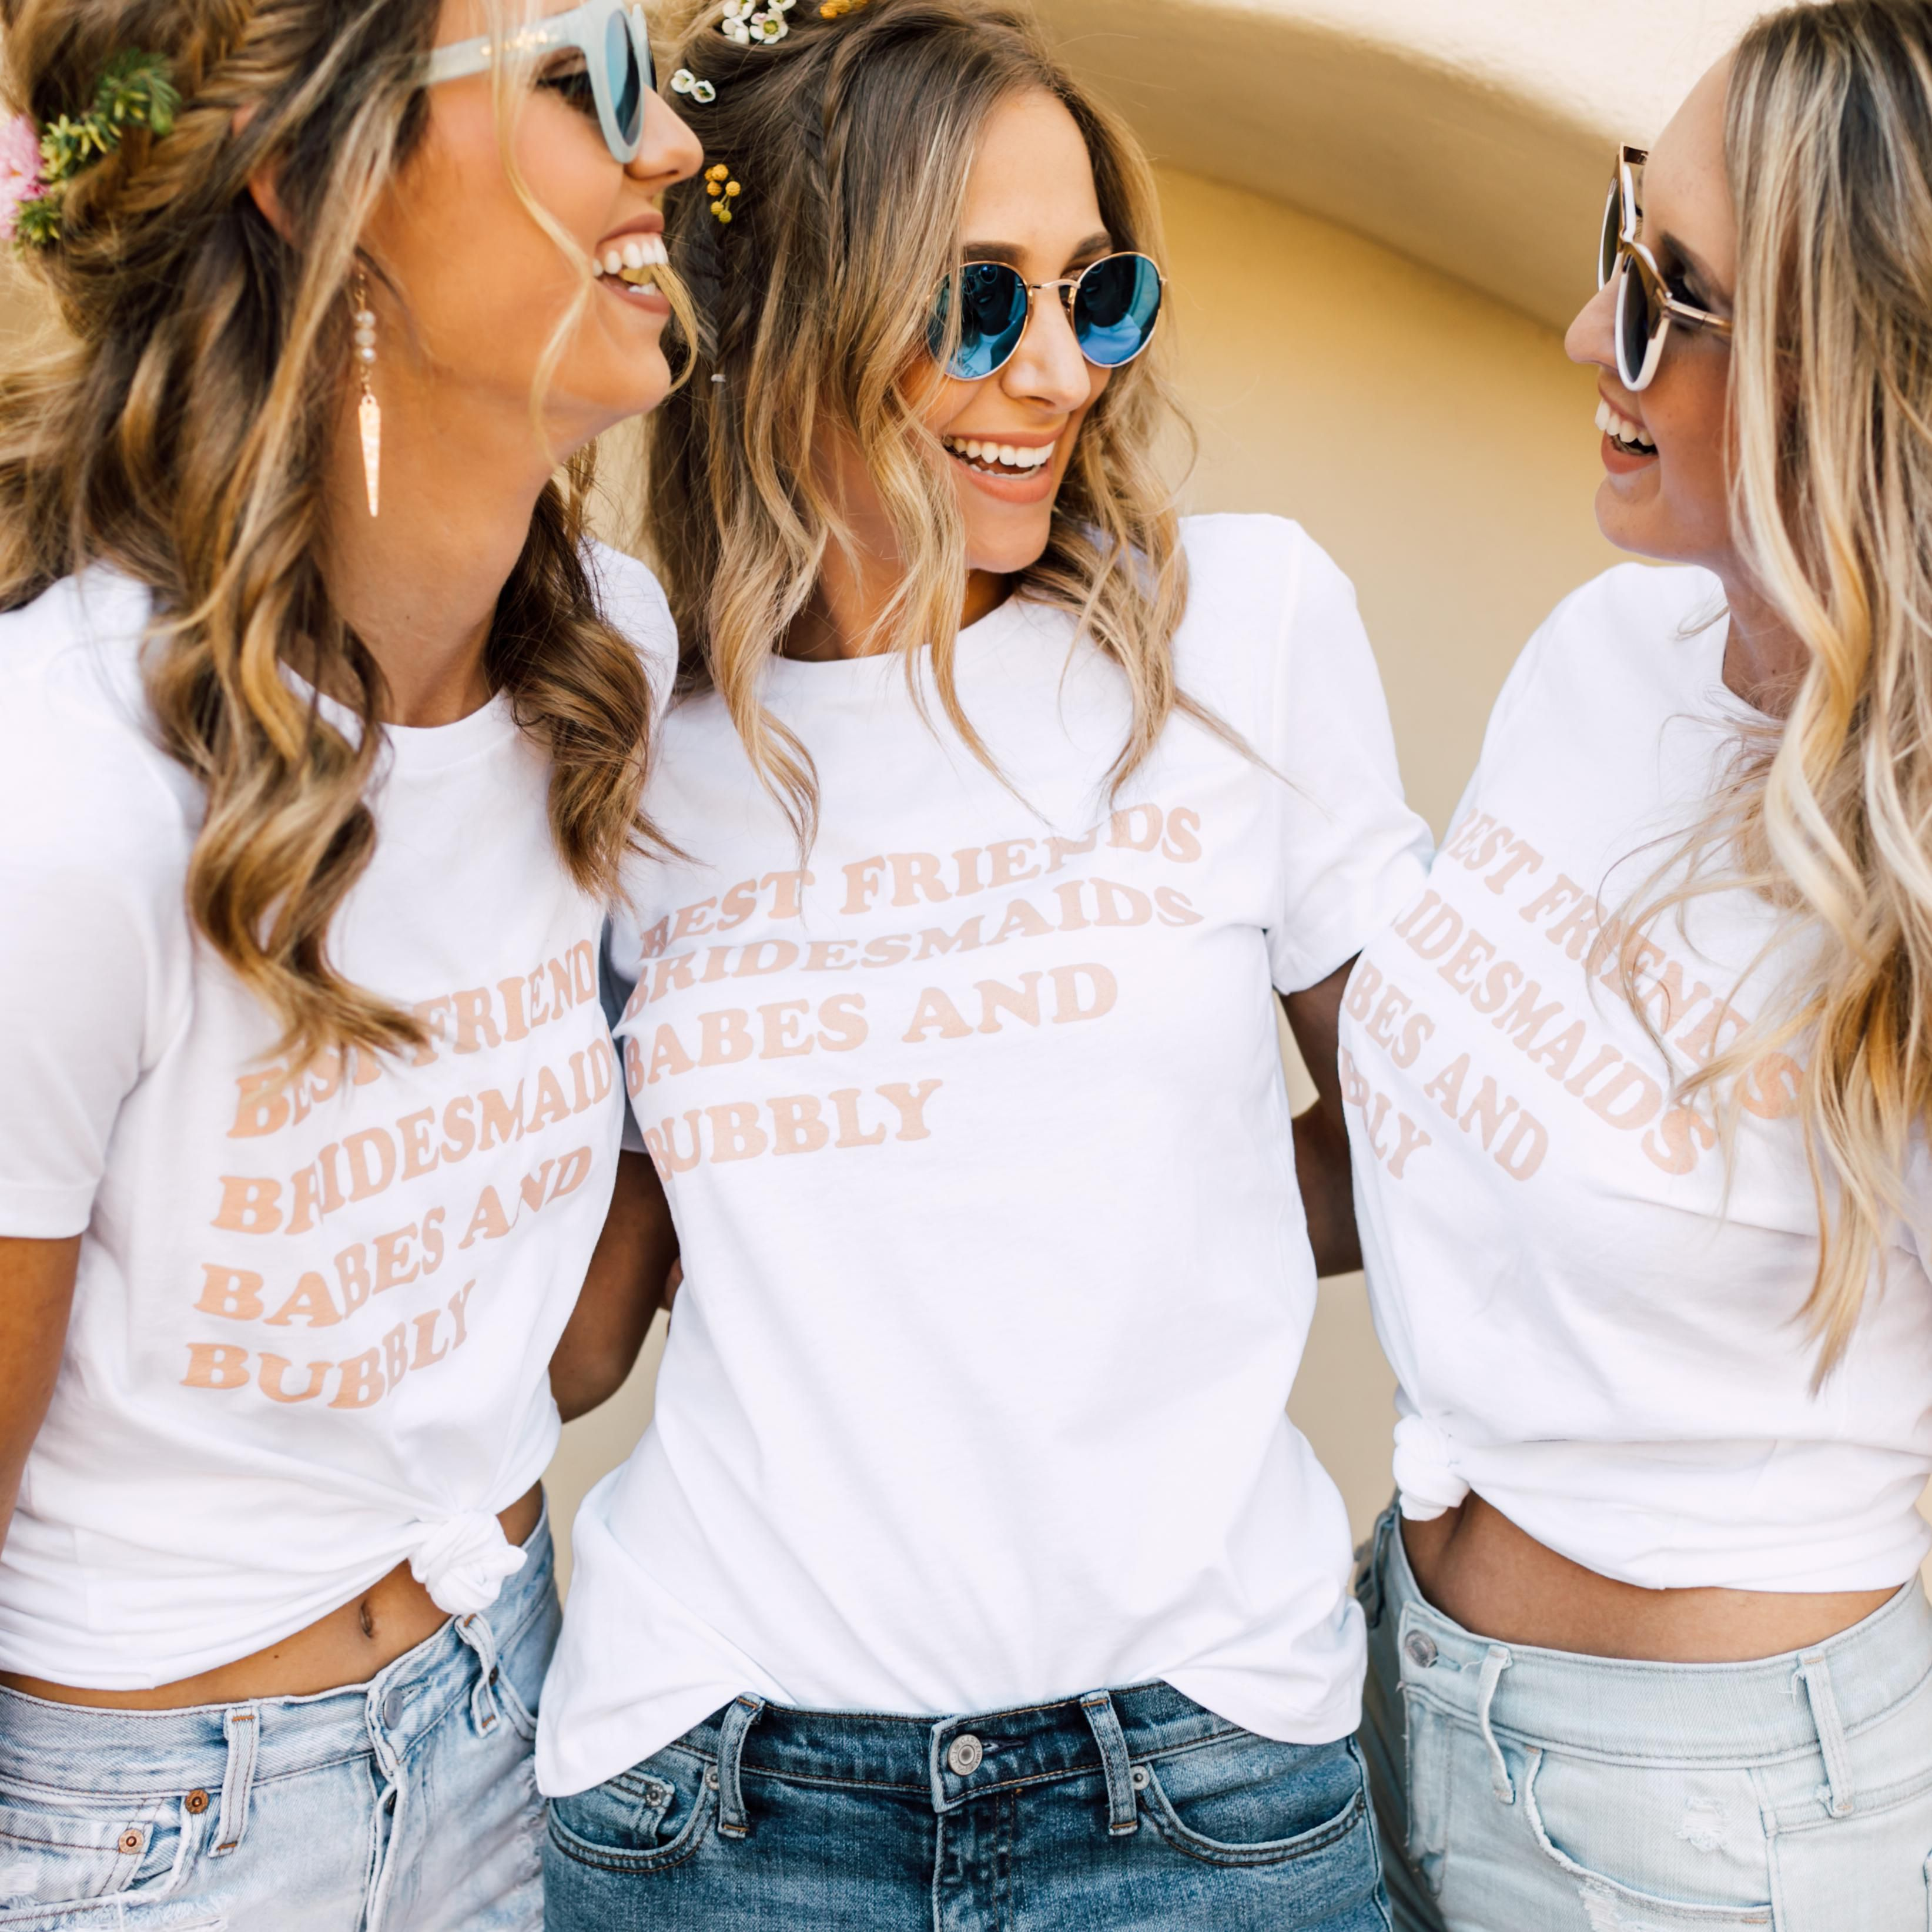 The 20 Best Bachelorette Party Shirts Of 2020